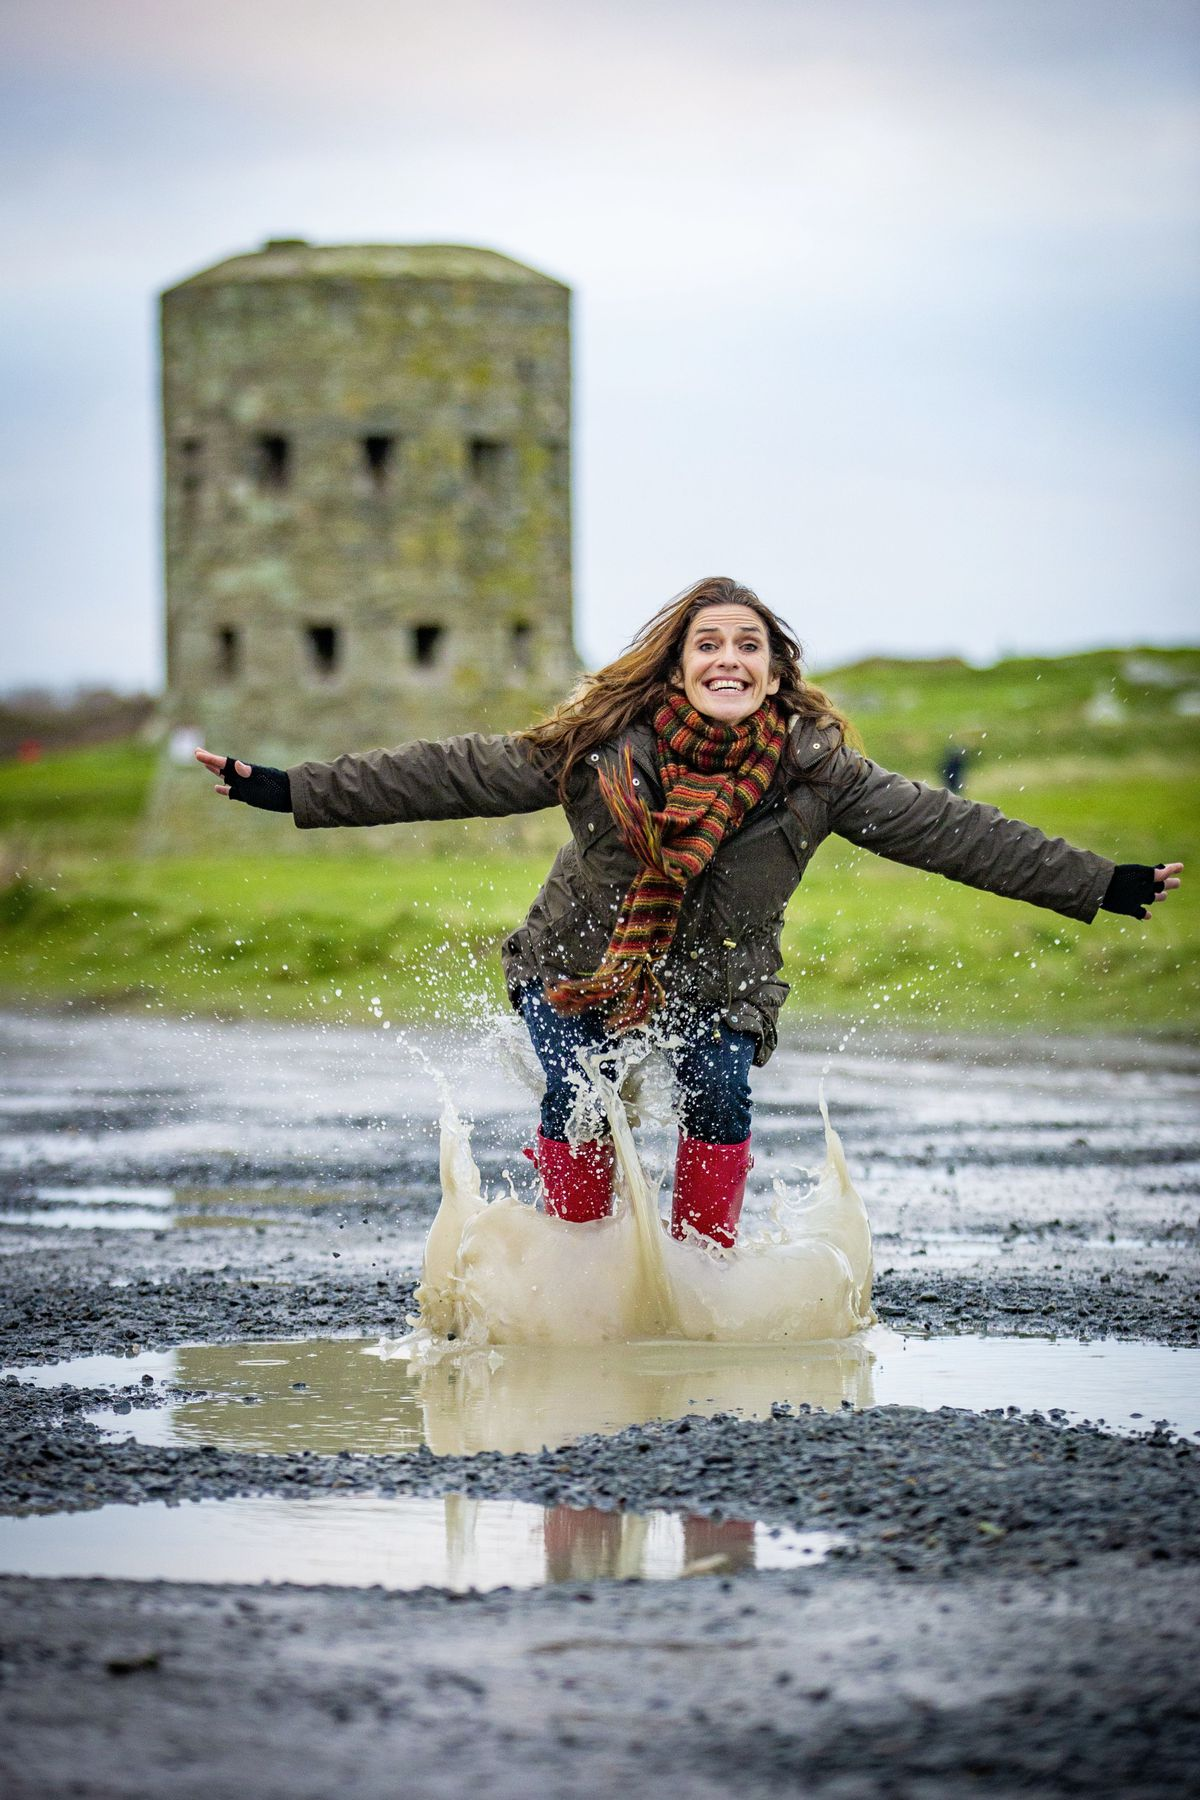 Susie Campanella's fundraising idea is for people all over the world to jump in a puddle and donate £1 to Cancer Research UK. She hopes to raise £1million. (Picture by Sophie Rabey, 29109874)